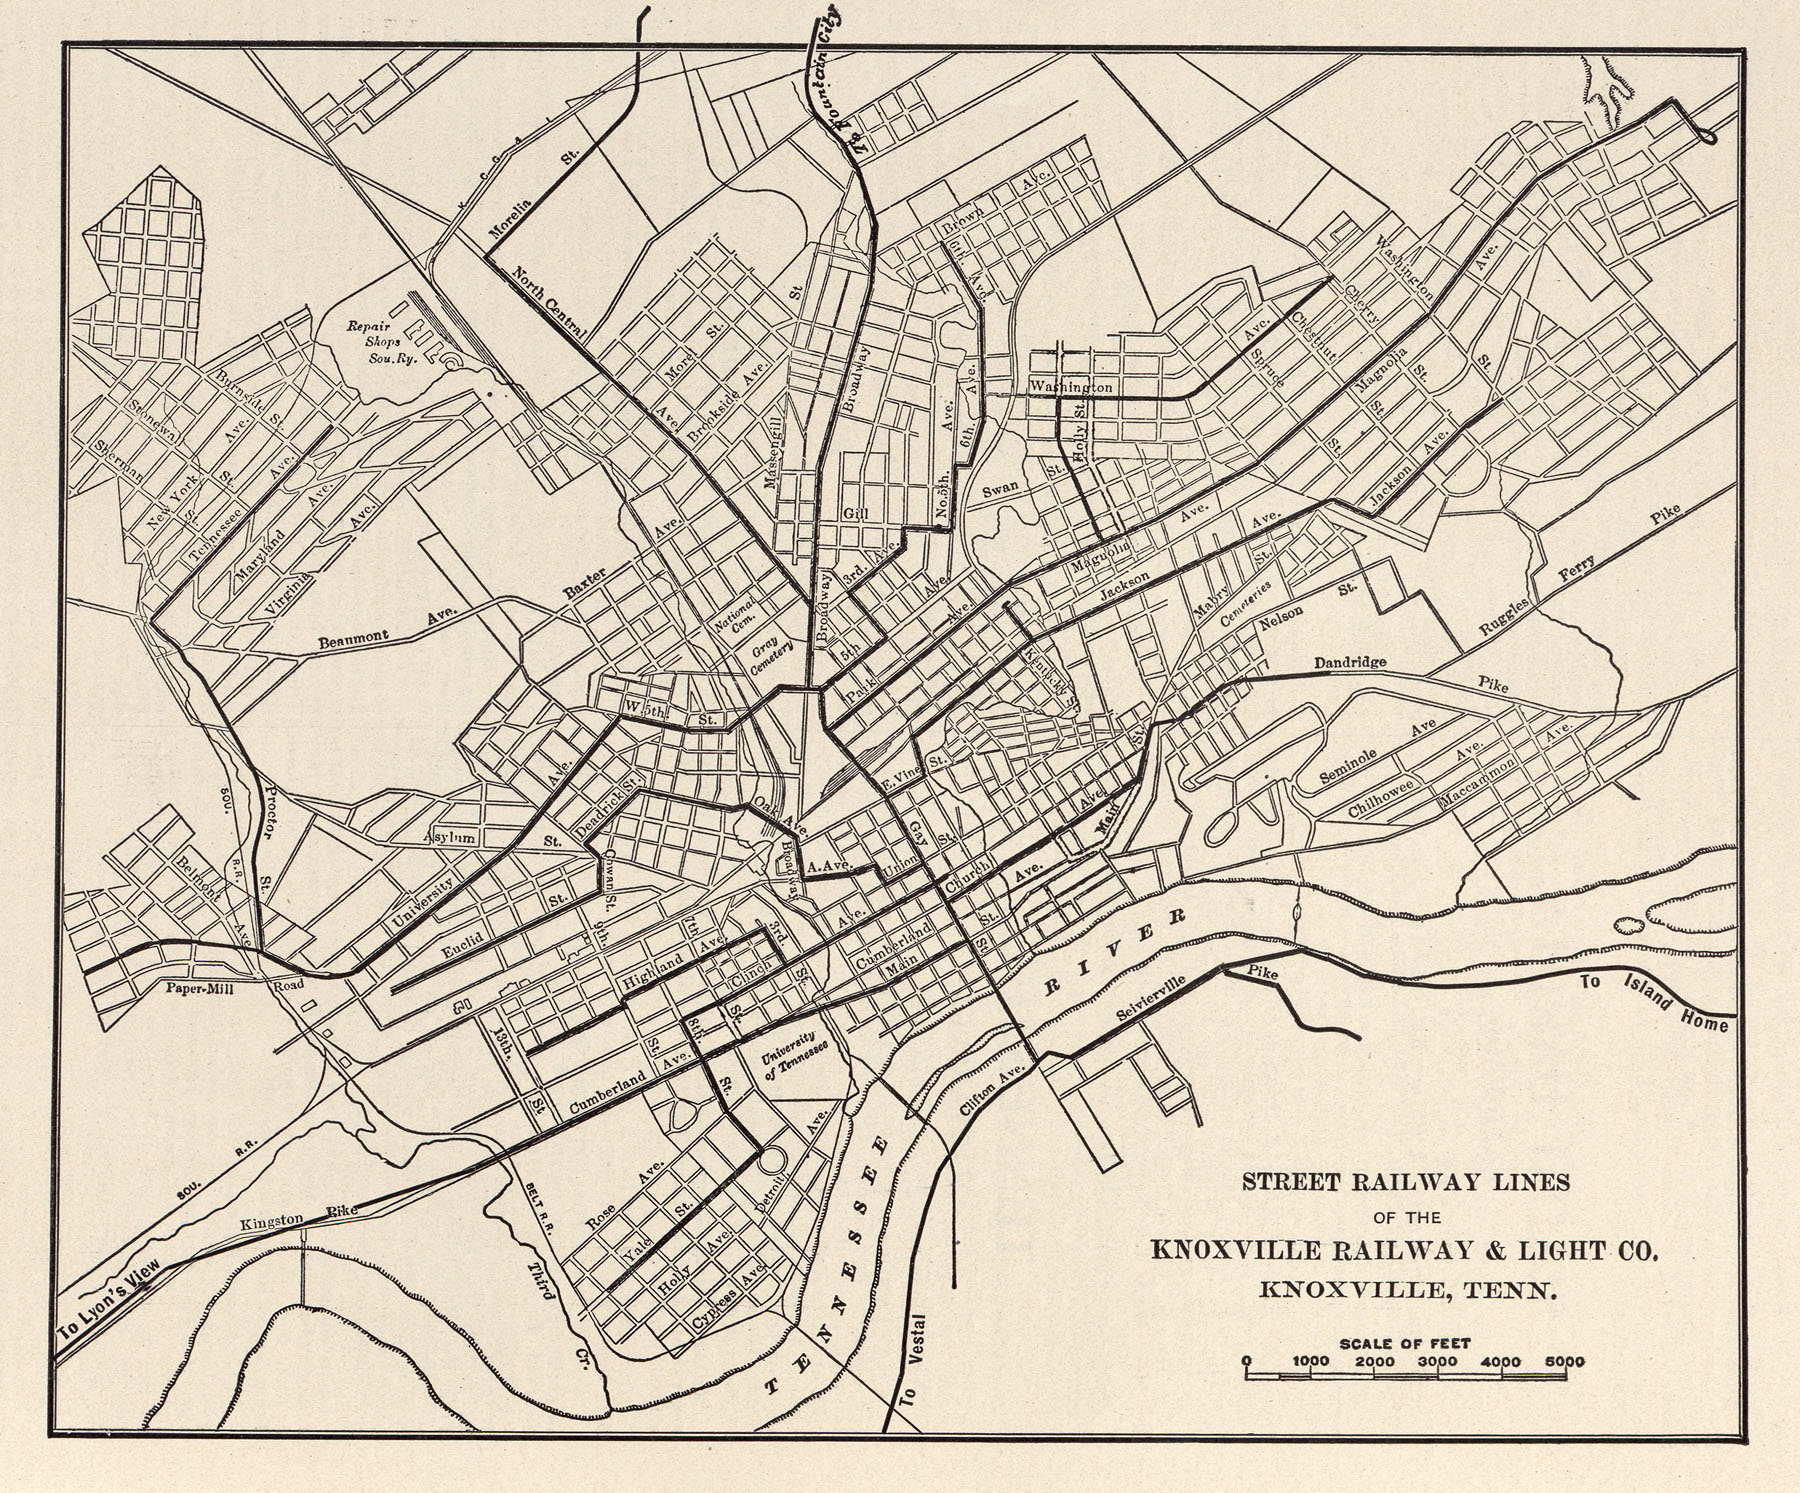 mcgraw electric railway manual  perrycastañeda map collection  - (kb) tennessee street railway lines of the knoxville railway  lightco knoxville tenn